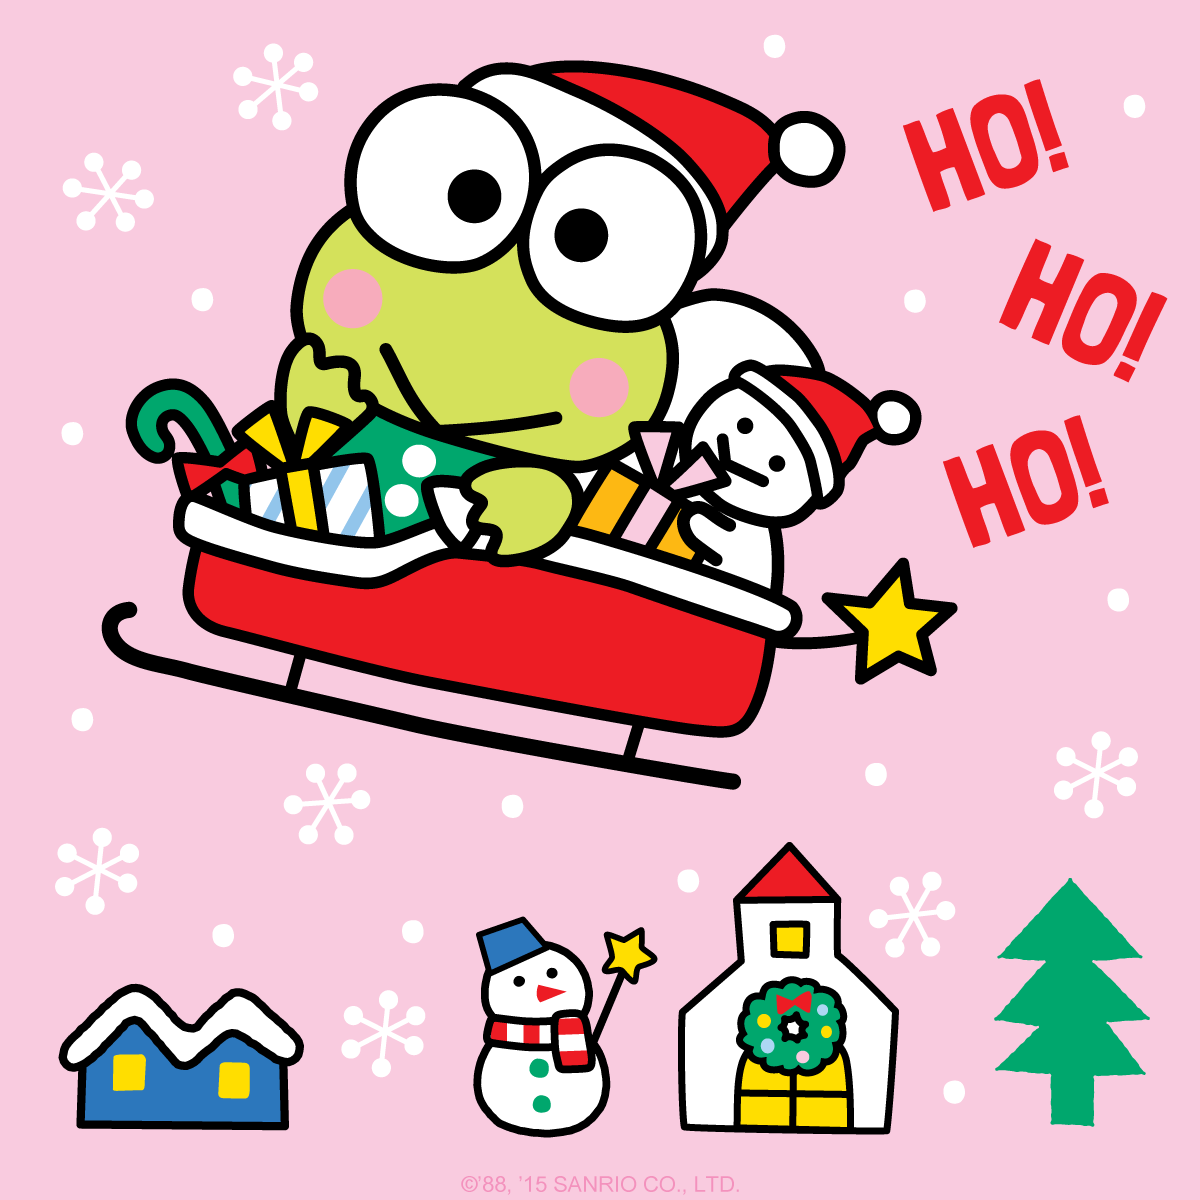 Keroppi Wallpaper Wallpapers: Wallpaper Android Gambar Keroppi